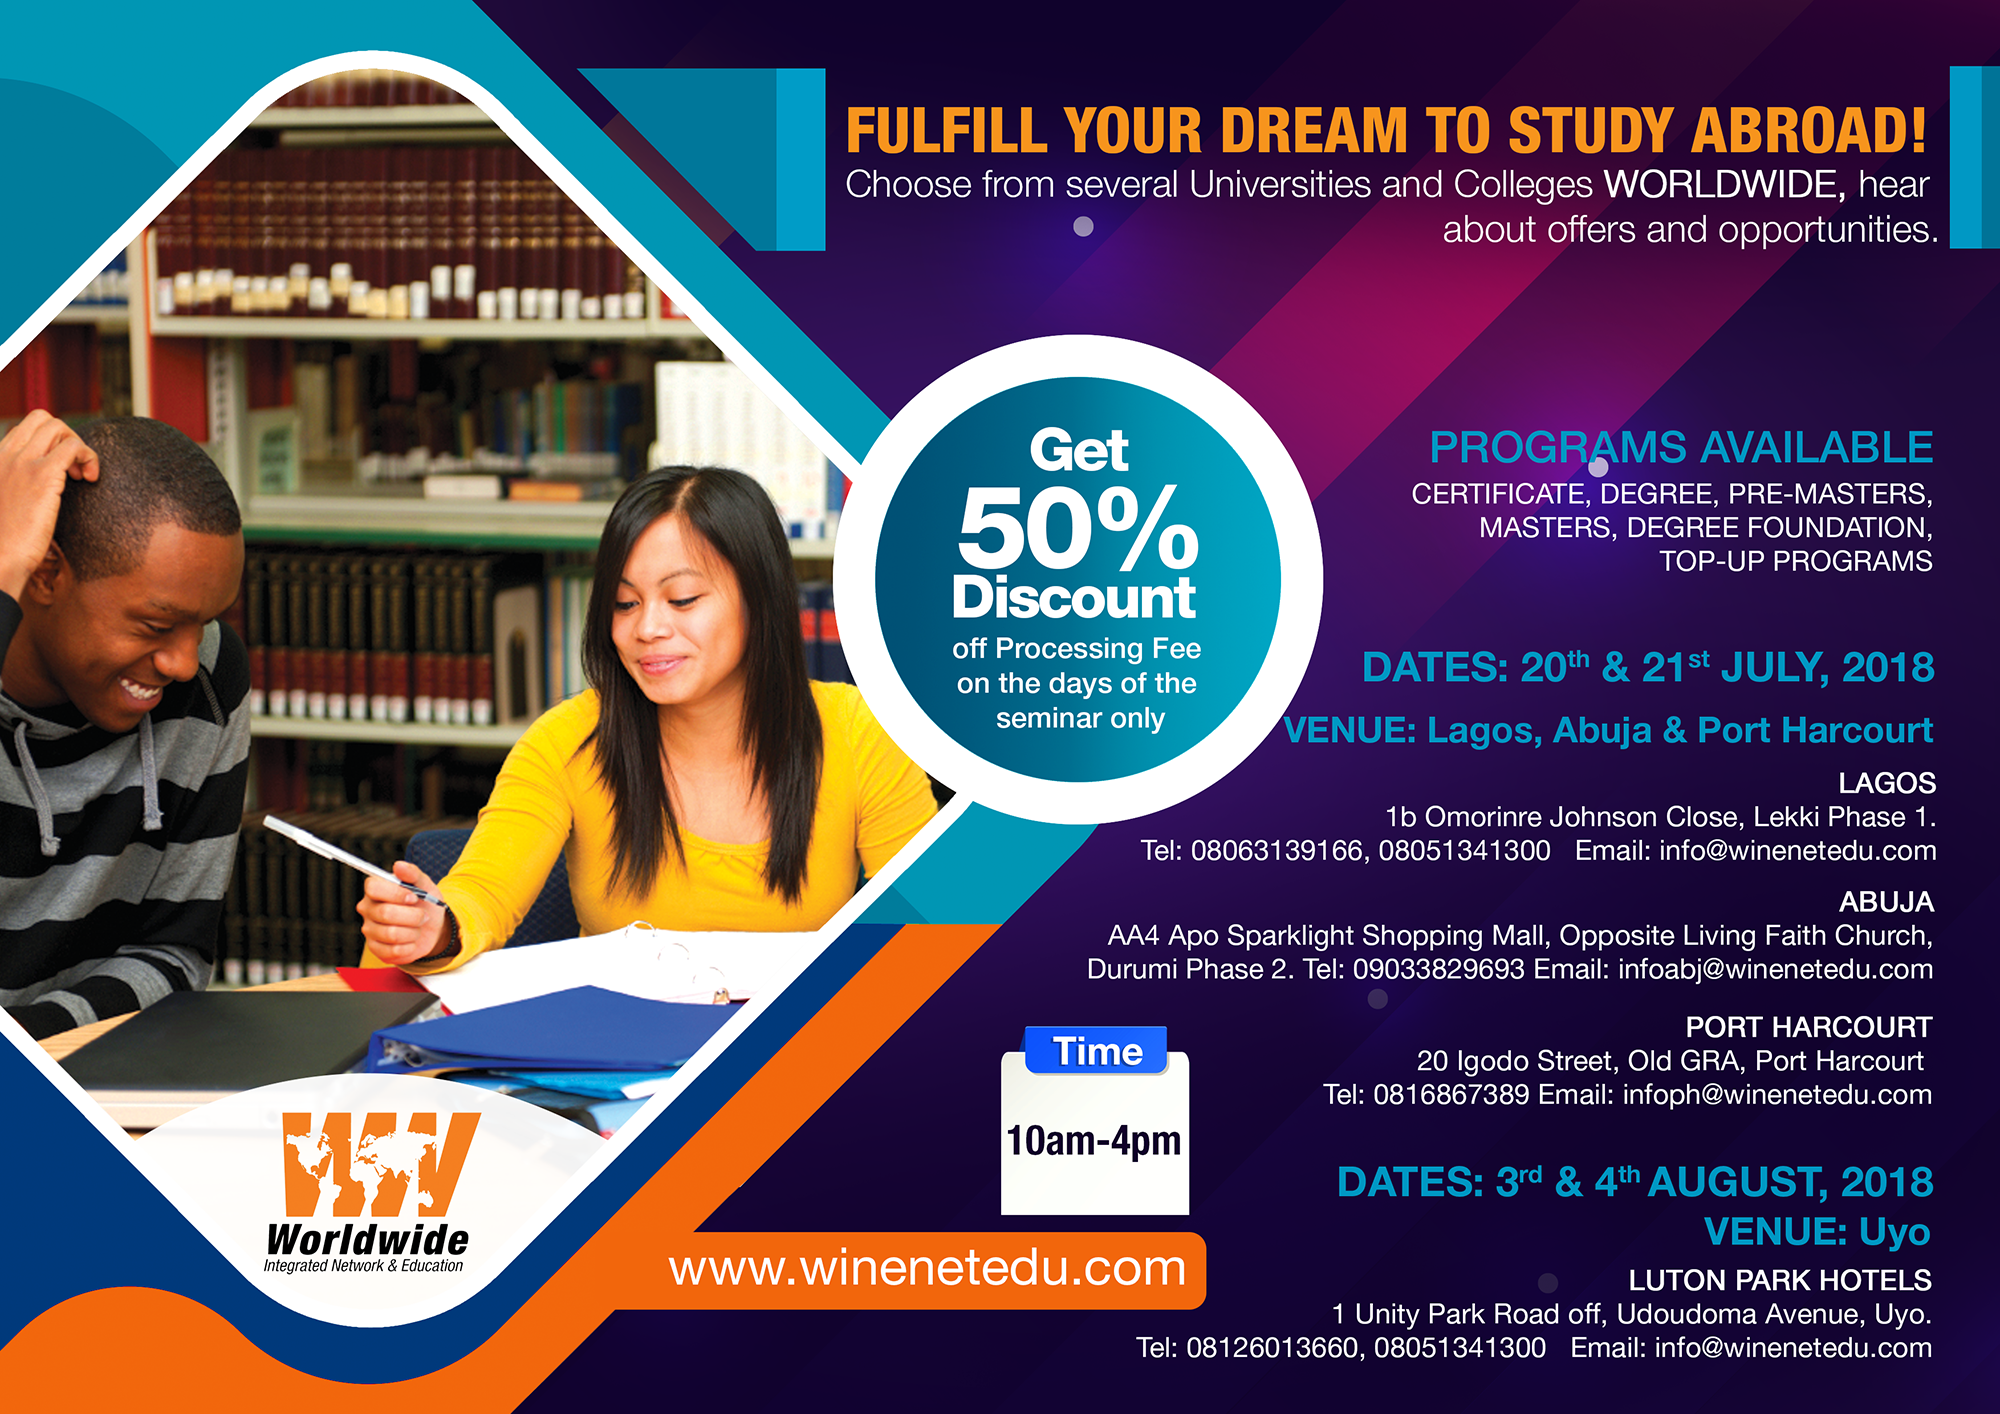 Shape Your Future - Study in Spain, Germany  Switzerland, Cyprus, UK, US  and many others